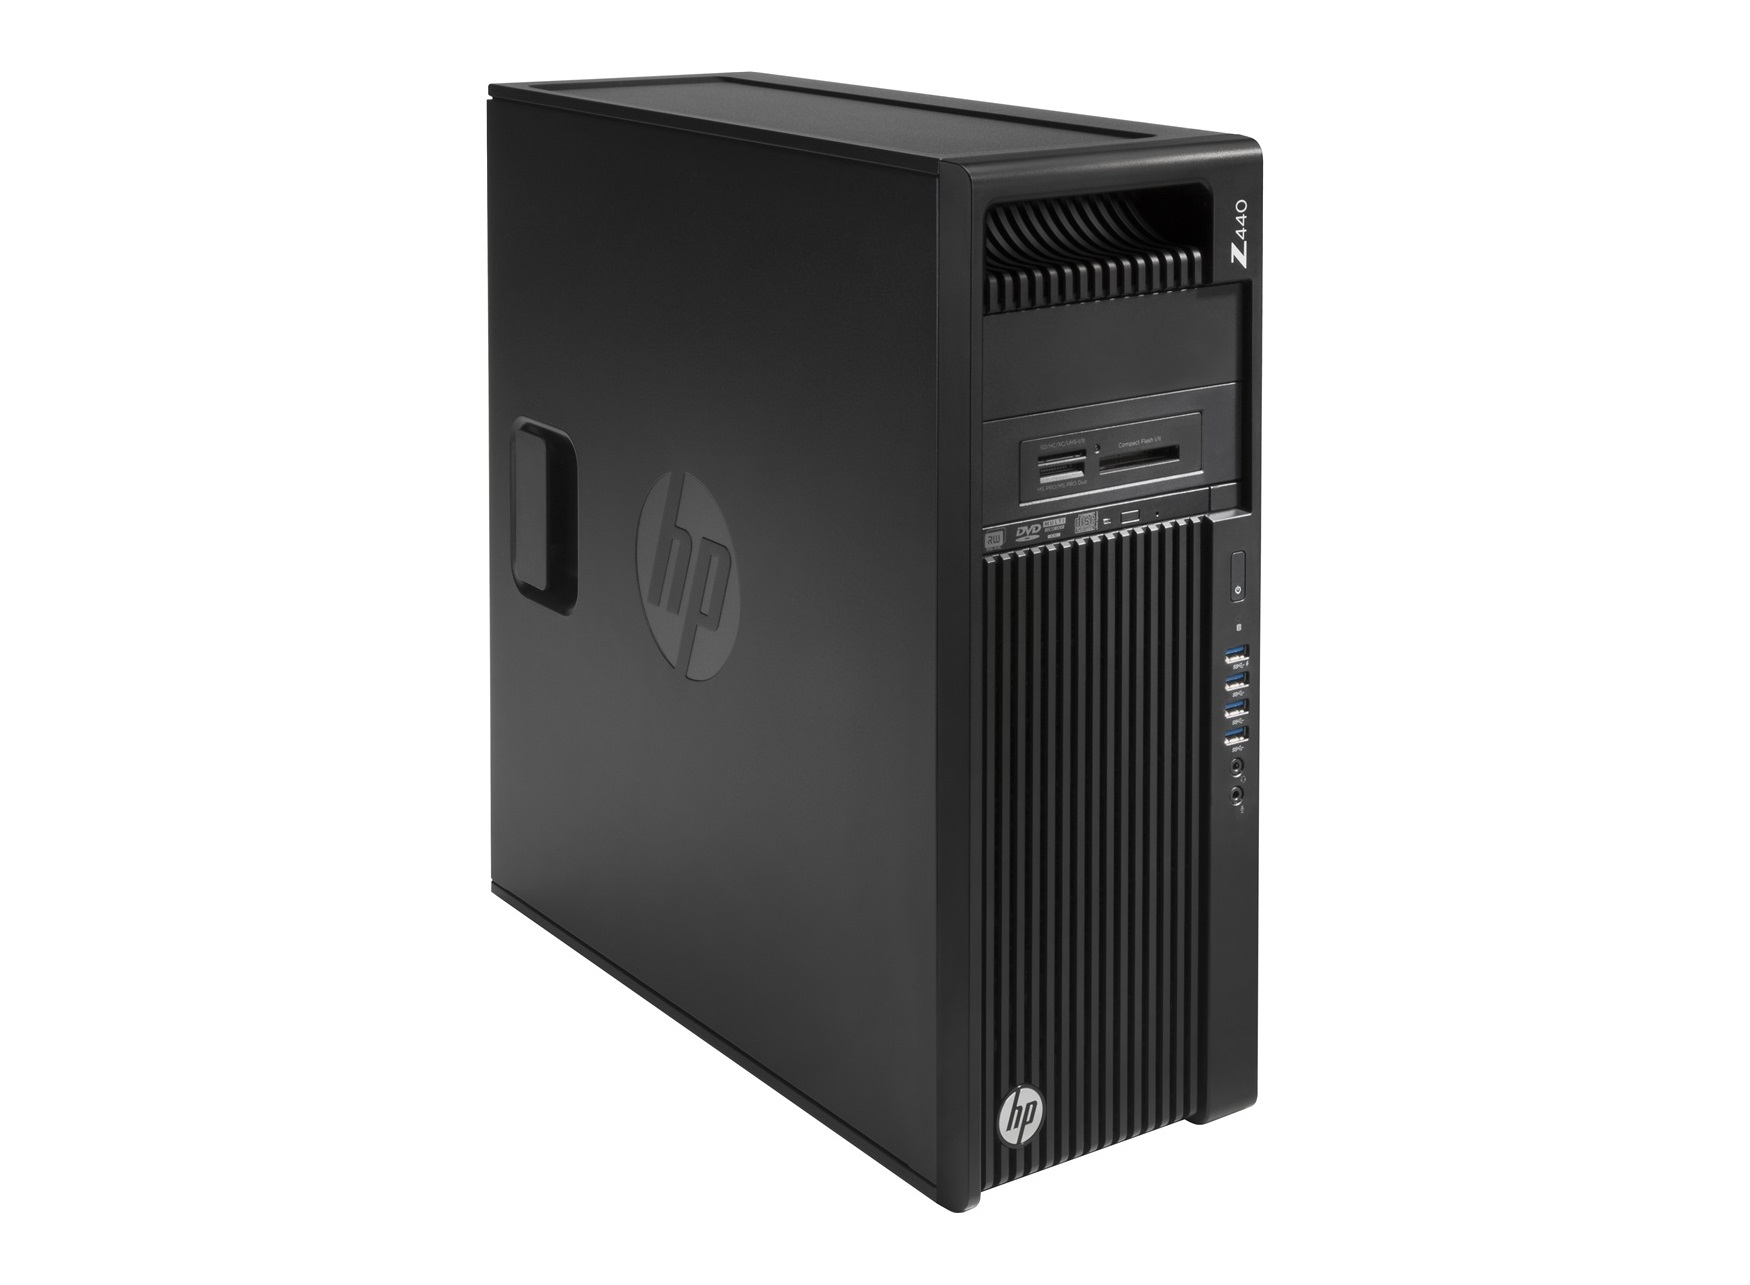 HP 440 MT + NVIDIA Quadro M4000 + 1TB SATA 6Gb/s 7200 HDD 3.5GHz E5-1620V4 Mini Tower Nero Stazione di lavoro